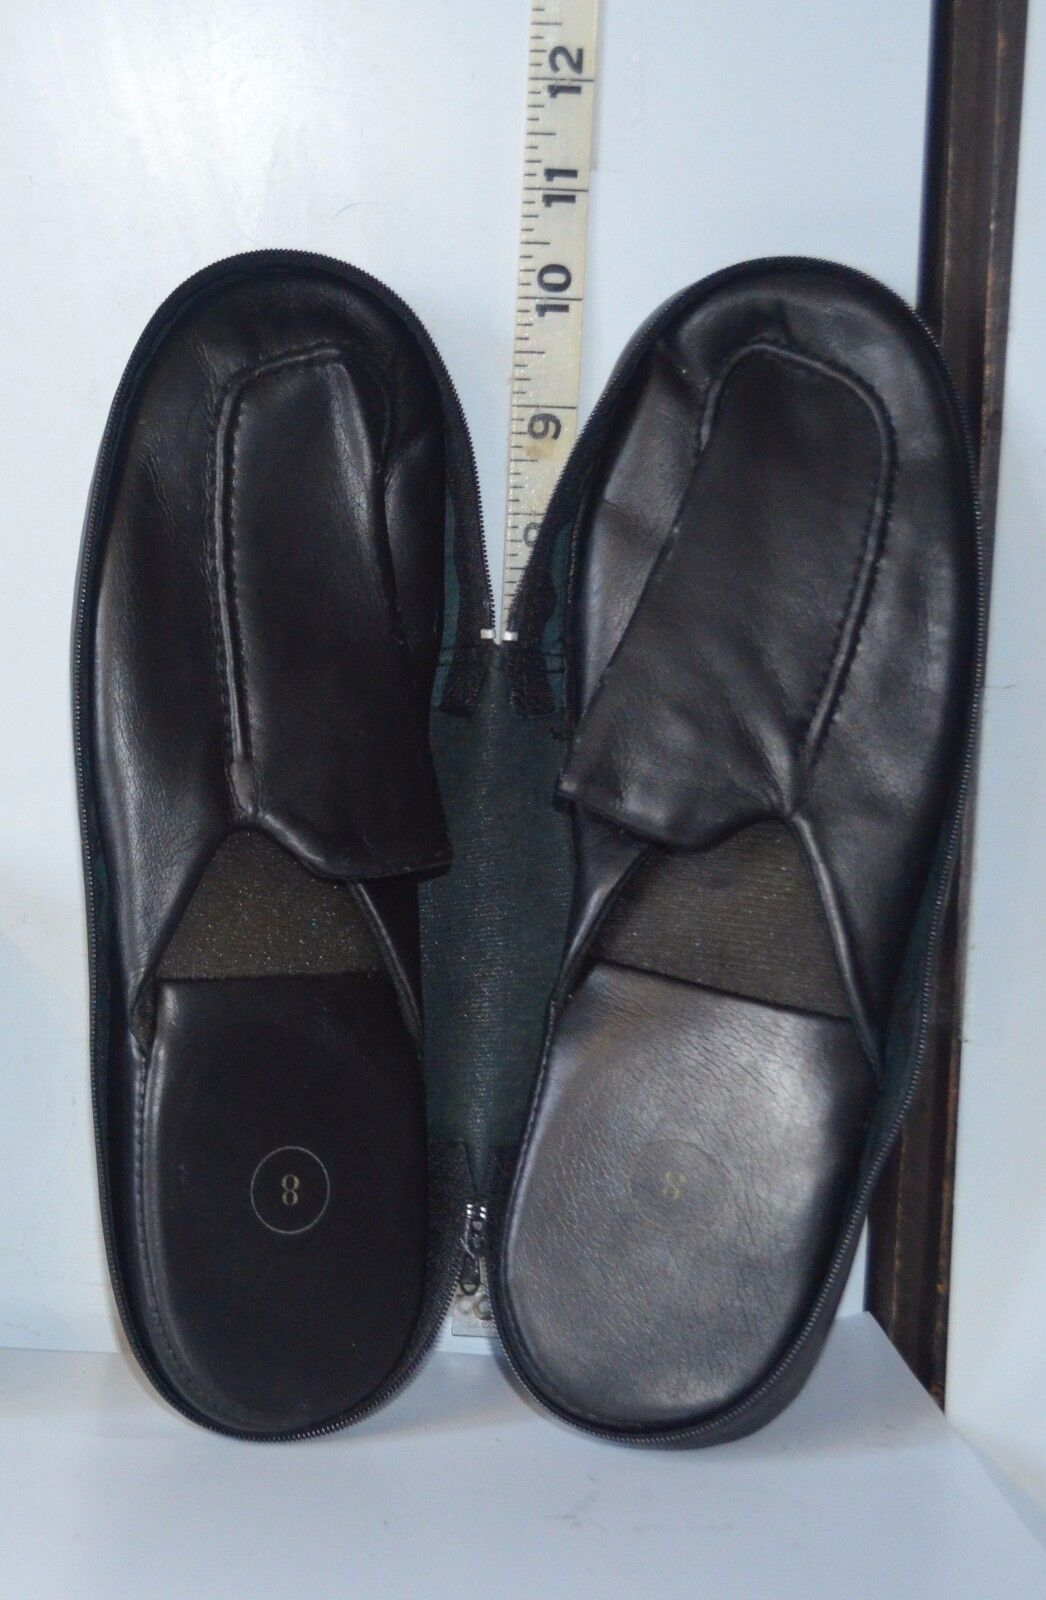 Ladies or On Men's Casual Black Slip On or Style Shoes /slippers w/Low Heels Size 8 626b84